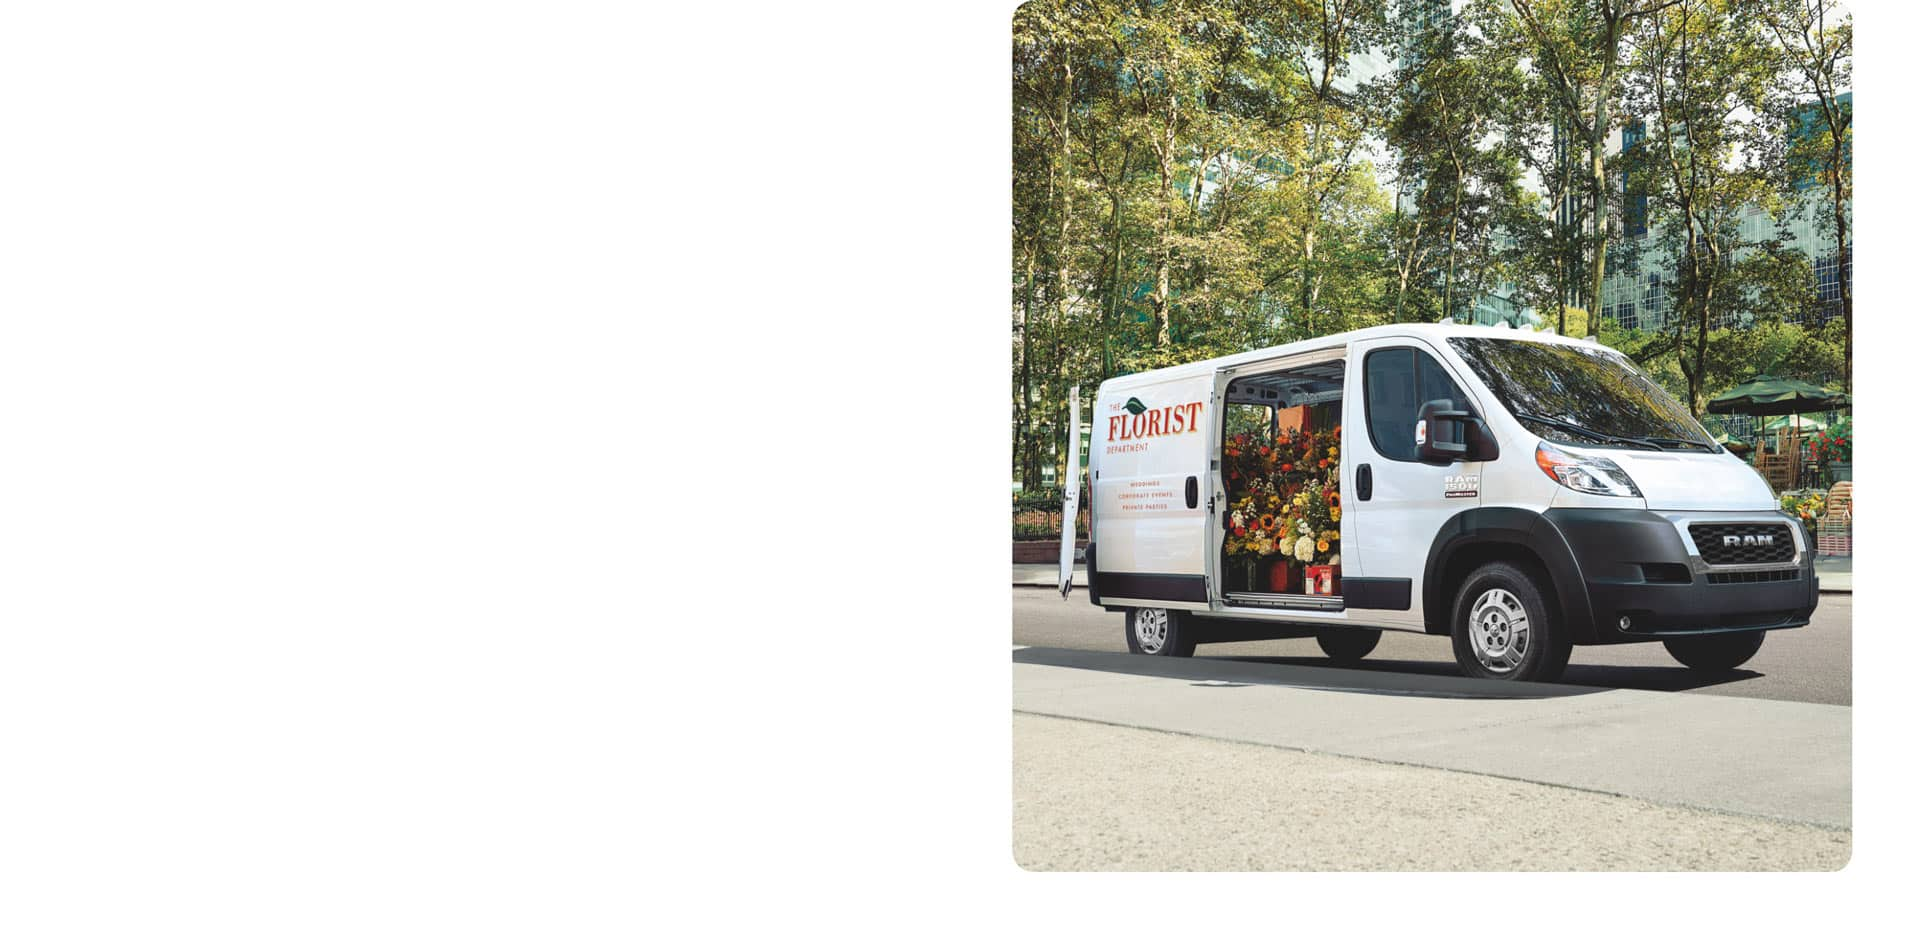 A 2021 Ram ProMaster with the logo of a florist on its side, its doors open to reveal the interior filled with flowers.